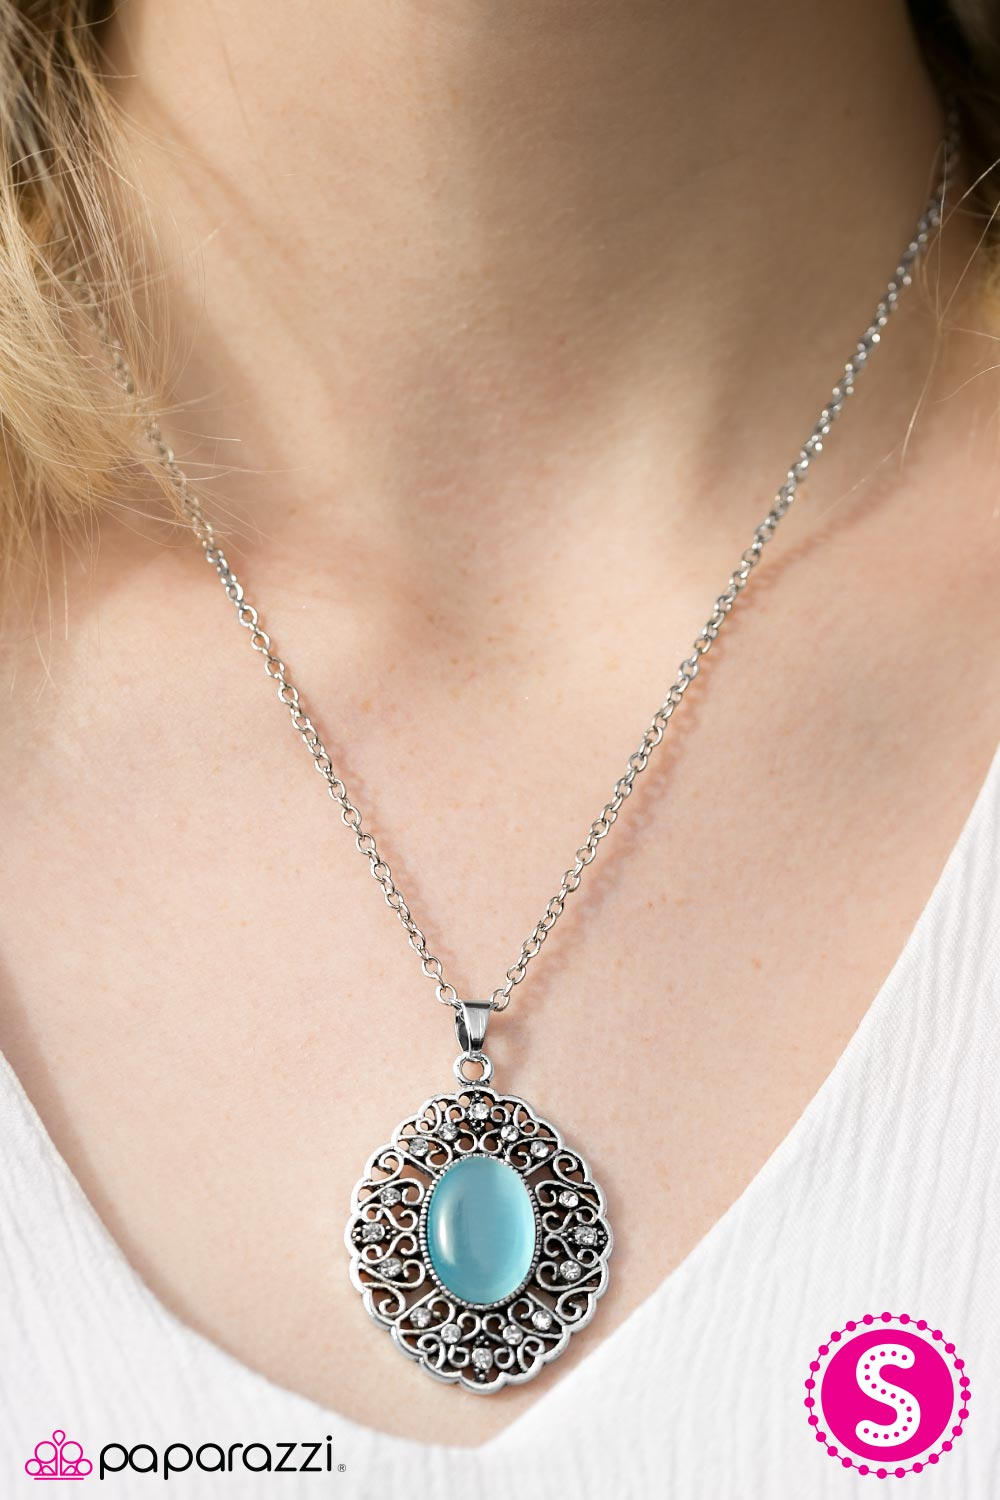 Heart Of Glace - Blue - Paparazzi necklace